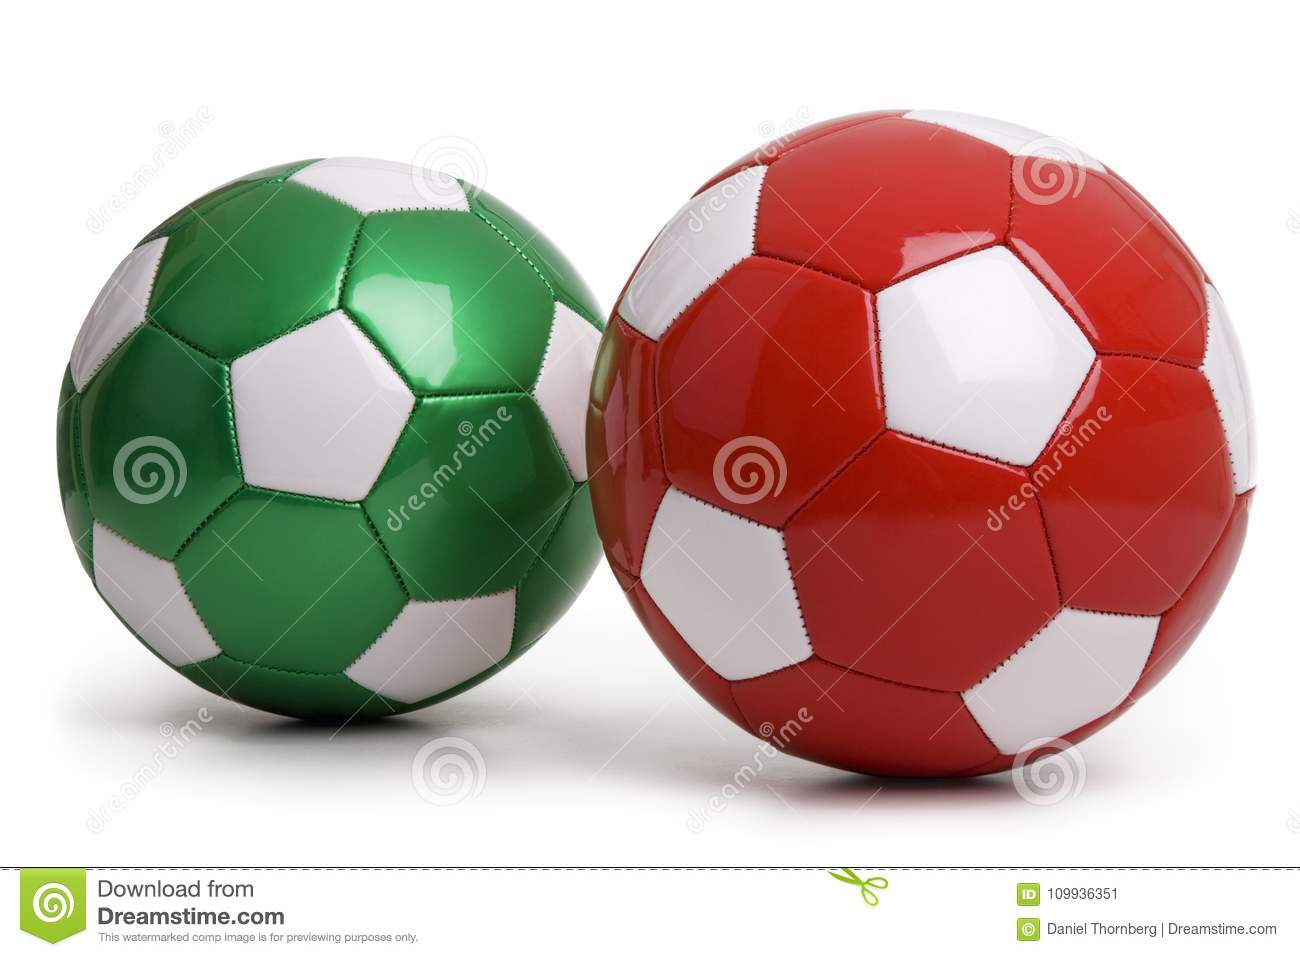 Ballons de football rouges et verts d isolement sur le fond blanc